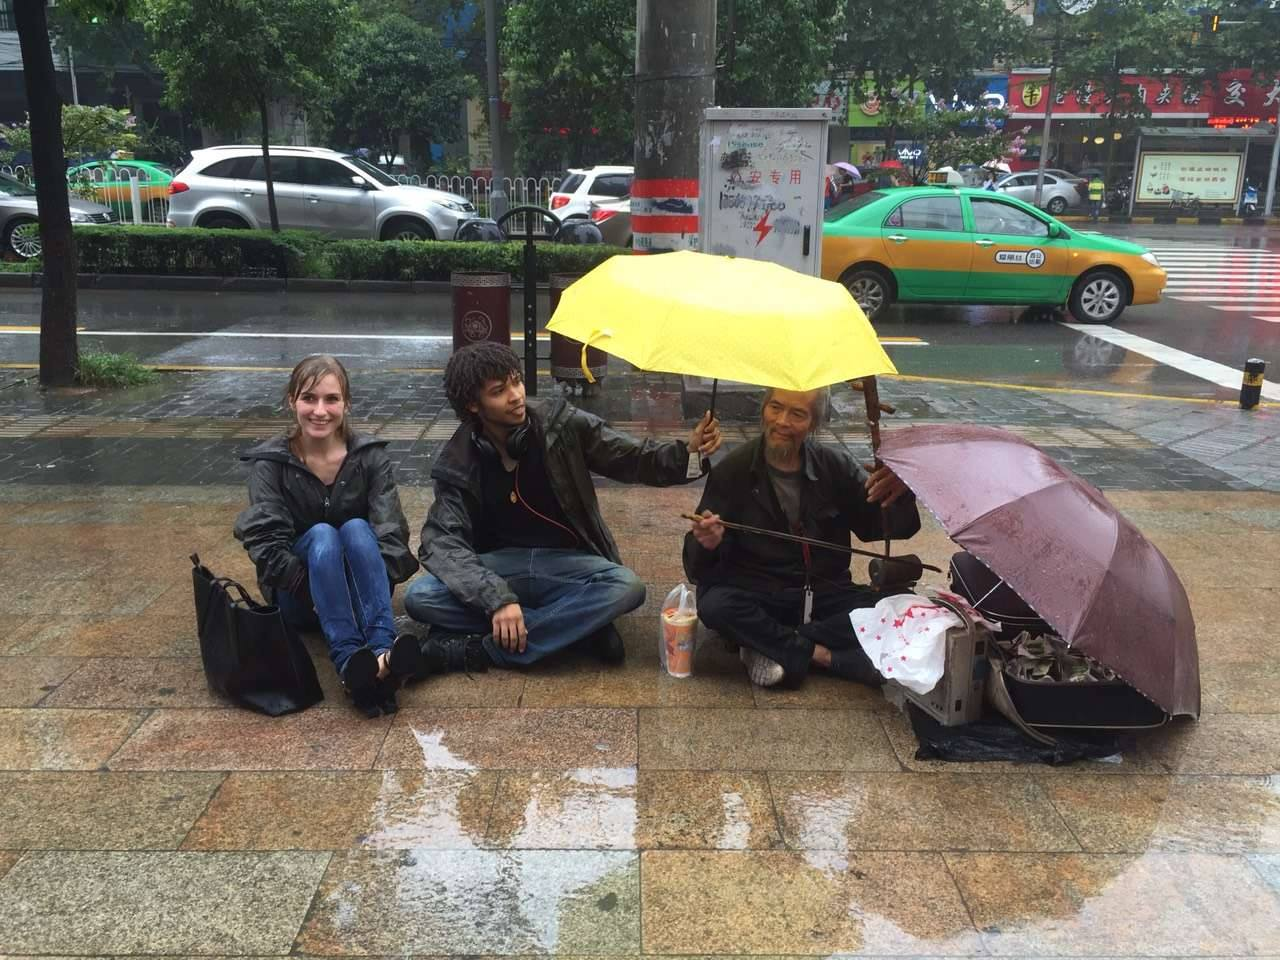 Shielding a homeless musician from the rain in China. [Ref. Flora's Testimonial]